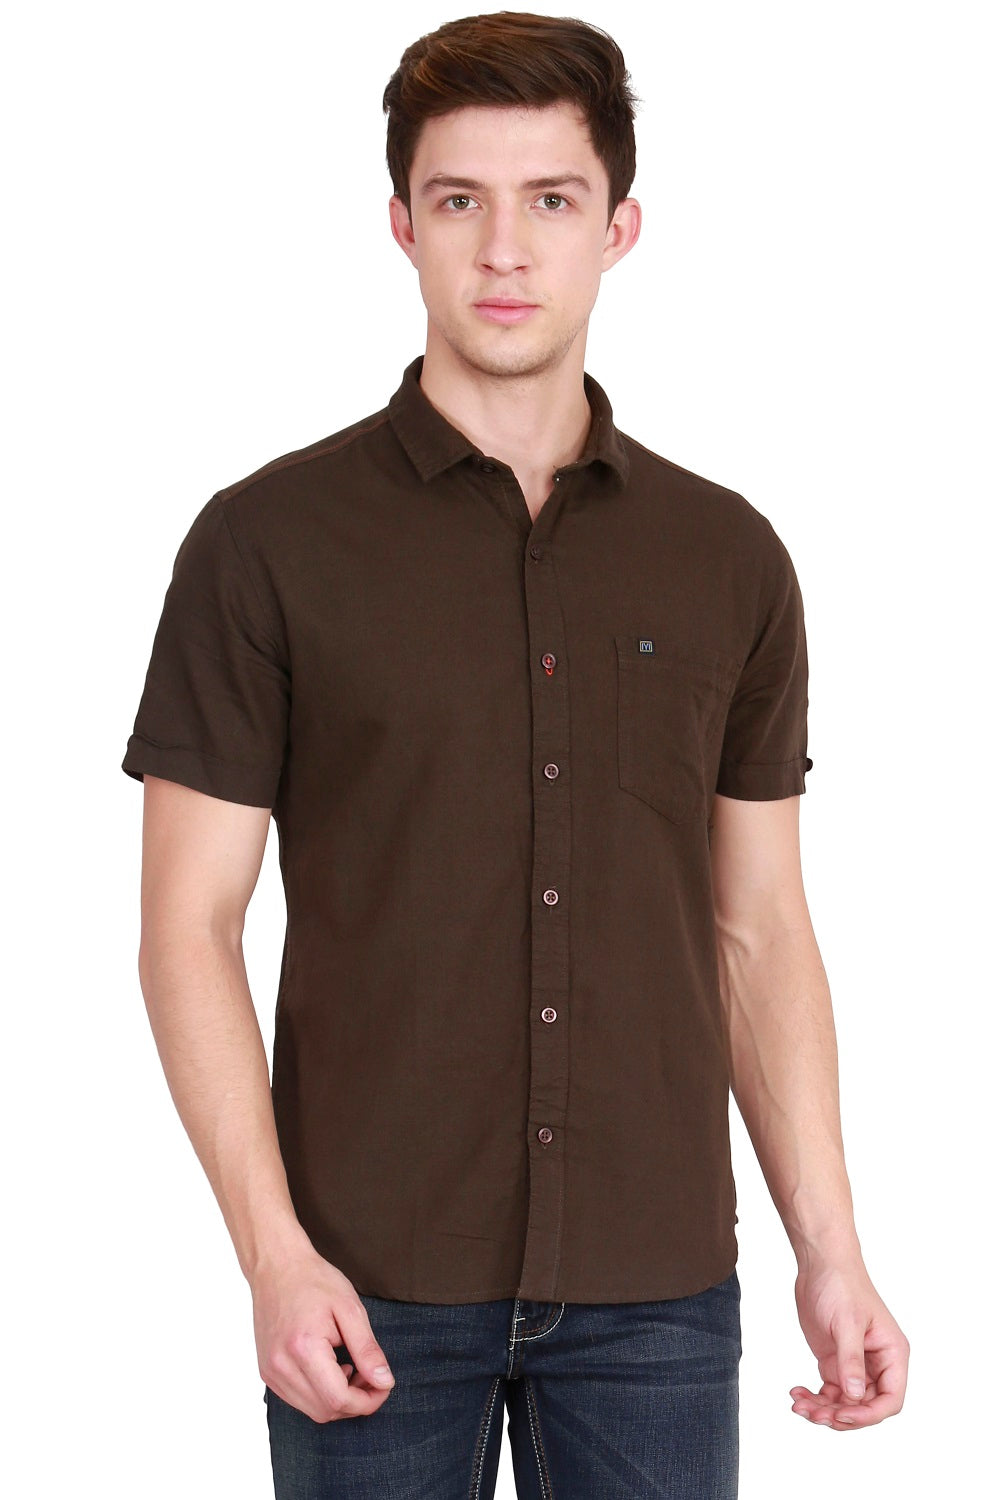 IMYOUNG Men's Solid Brown Cotton Linen Casual Shirt